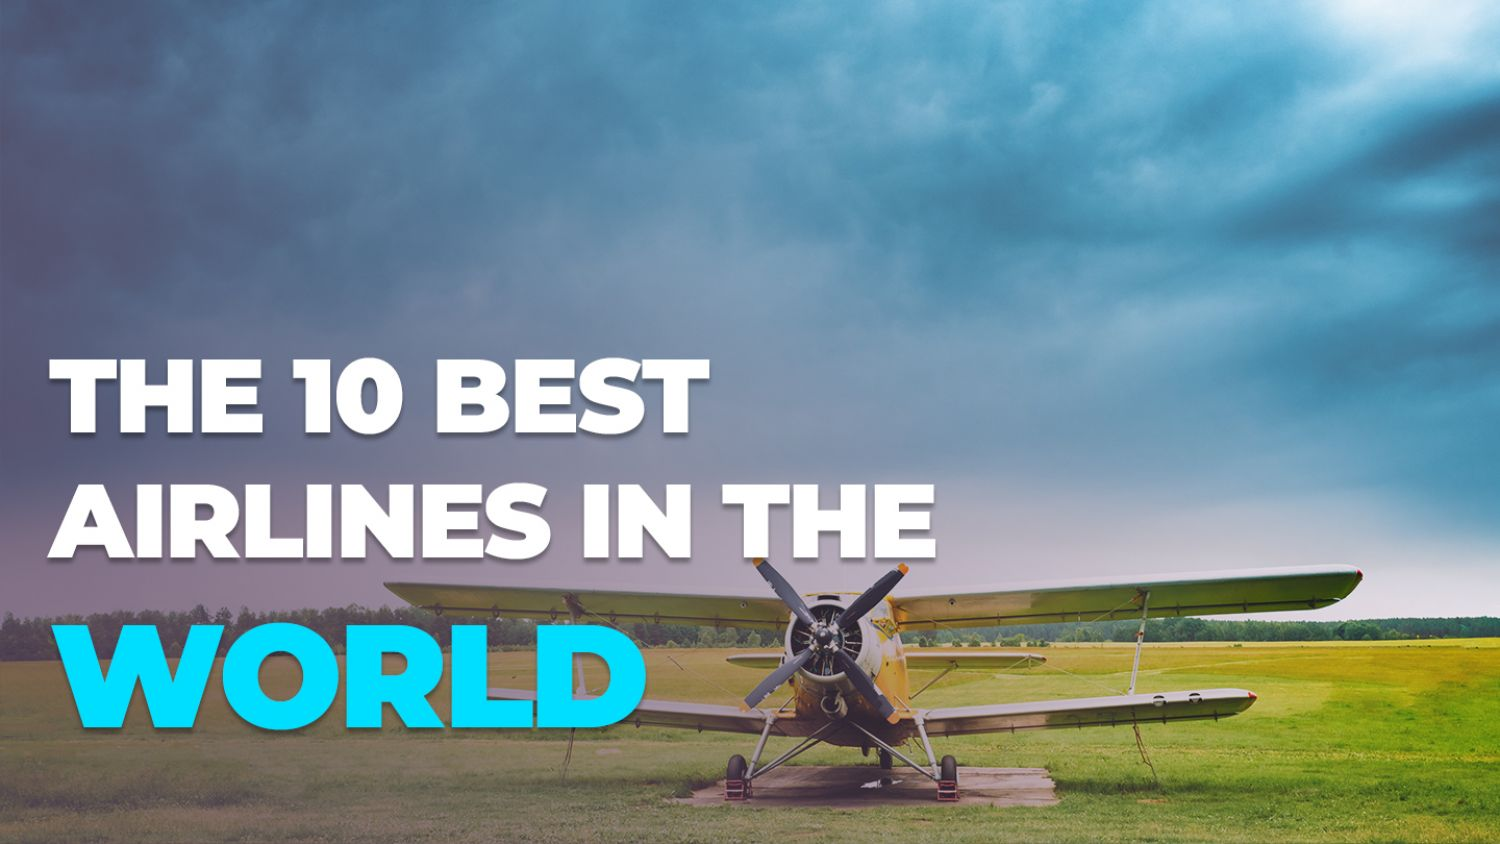 THE 10 BEST AIRLINES IN THE WORLD